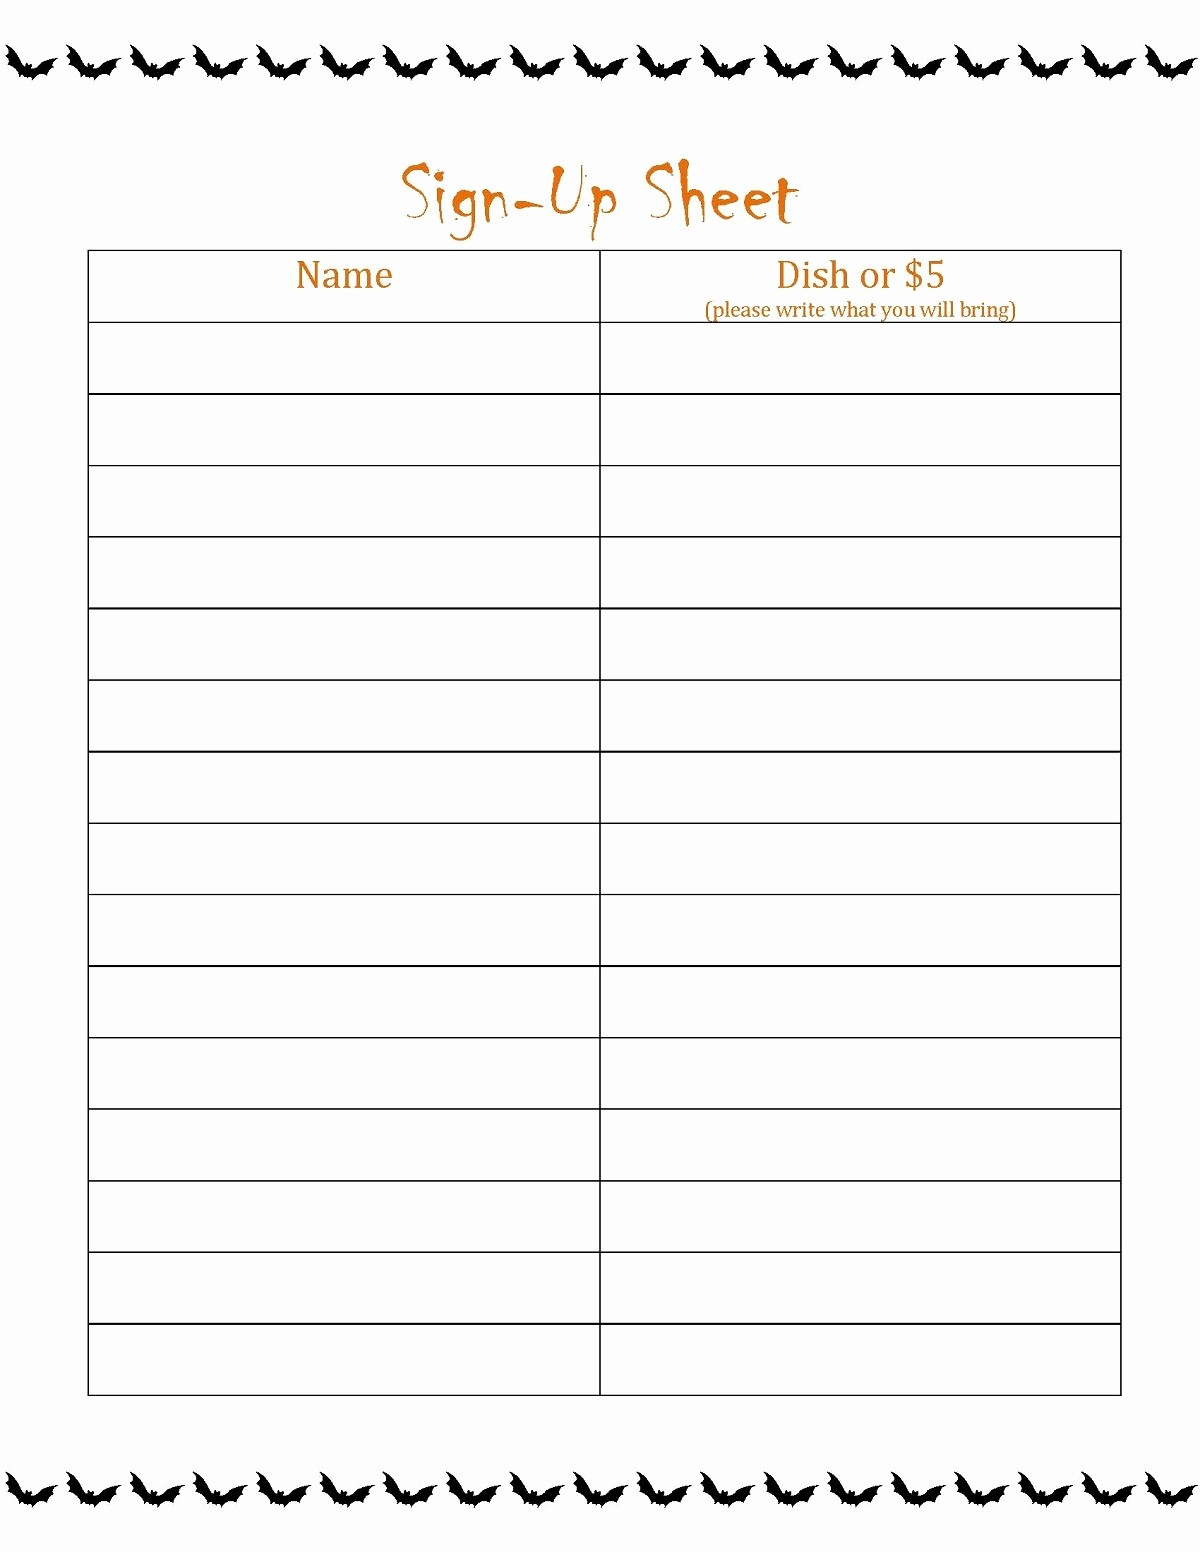 Blank Sign In Sheet Template Fresh Blank Sign Up Sheet Printable